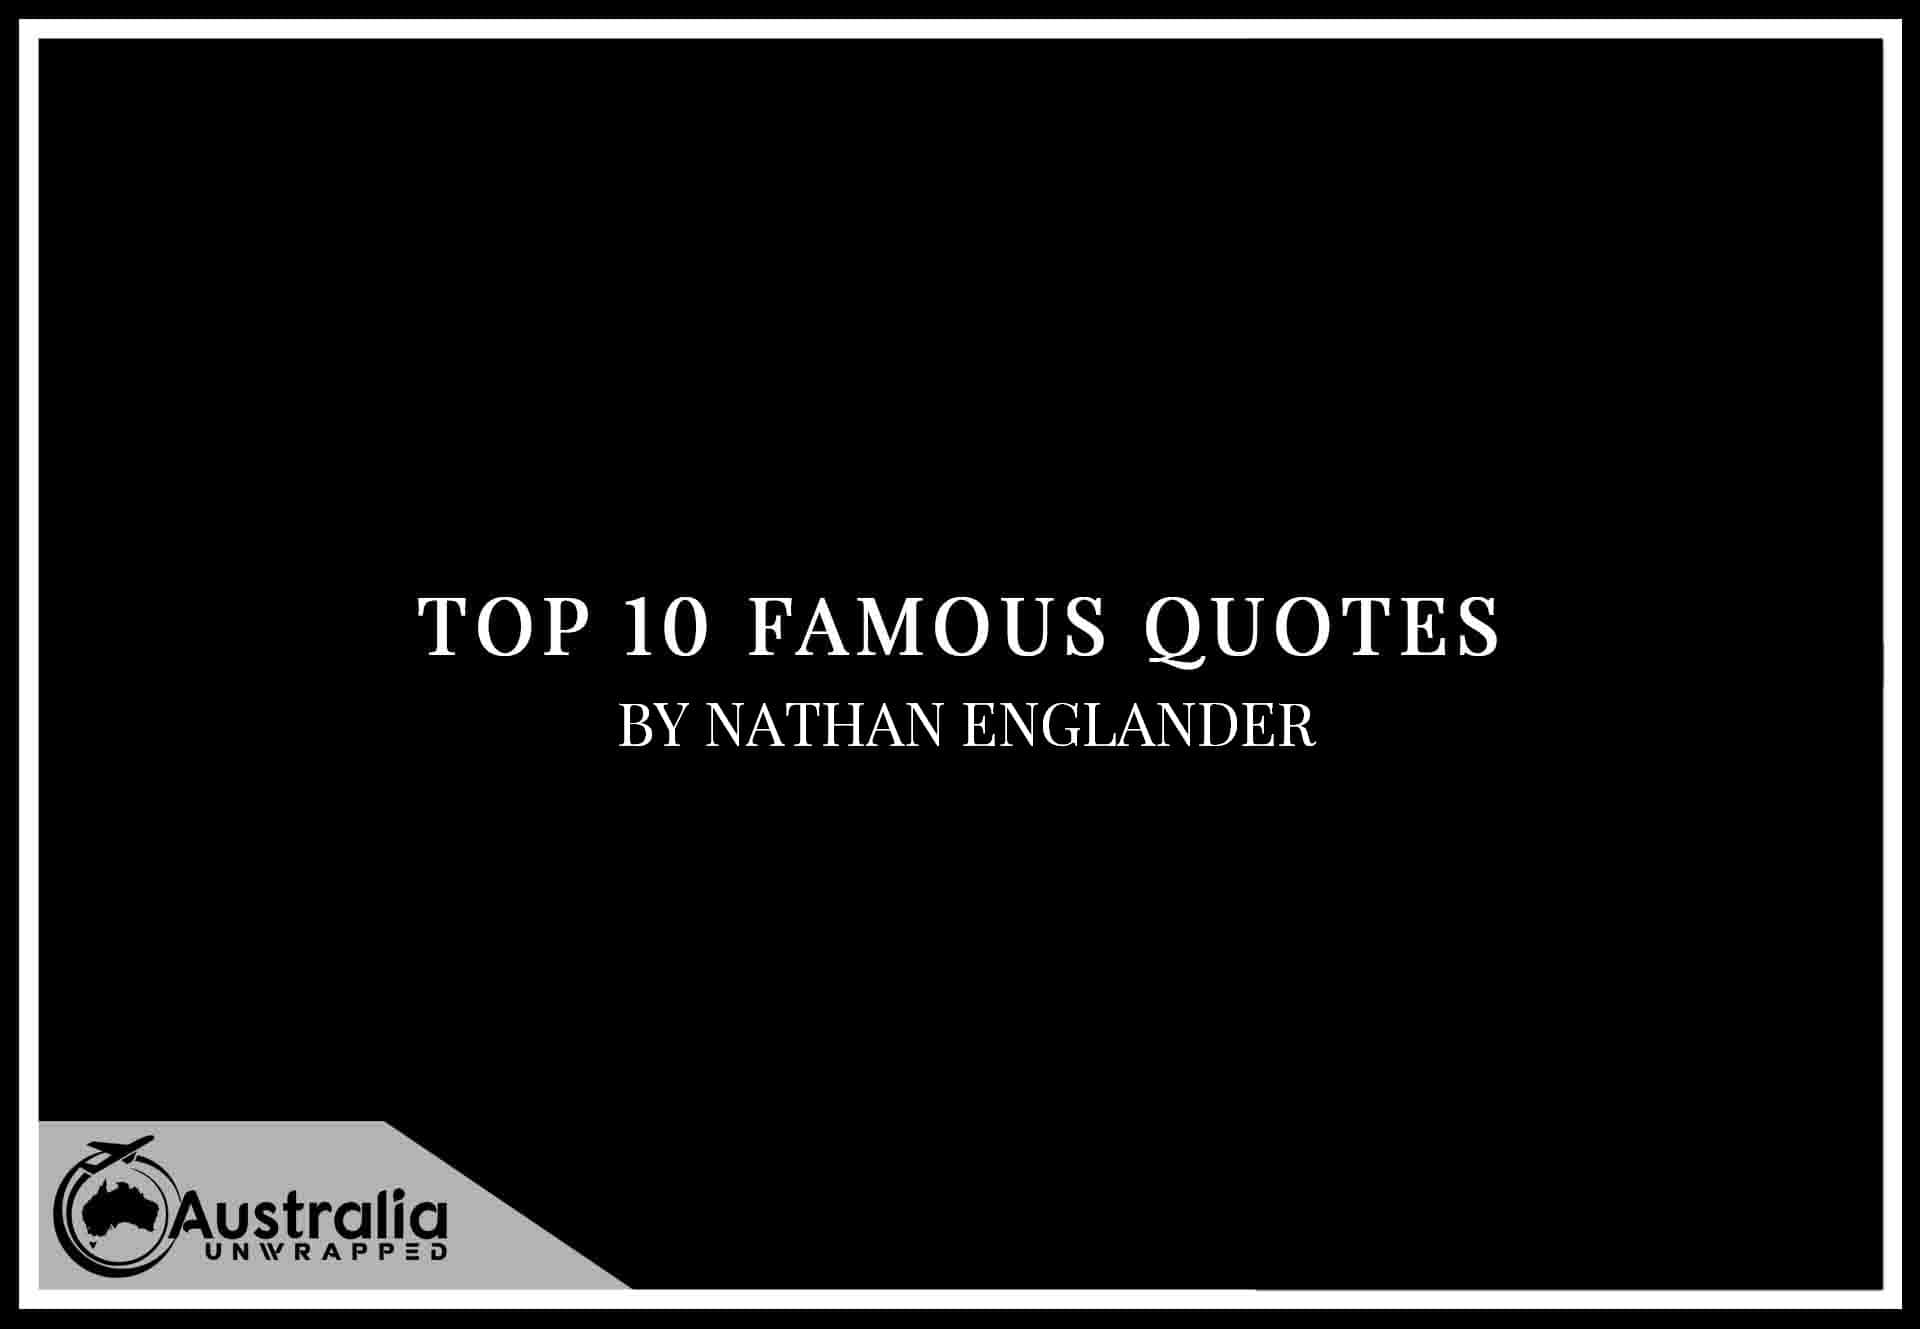 Top 10 Famous Quotes by Author Nathan Englander